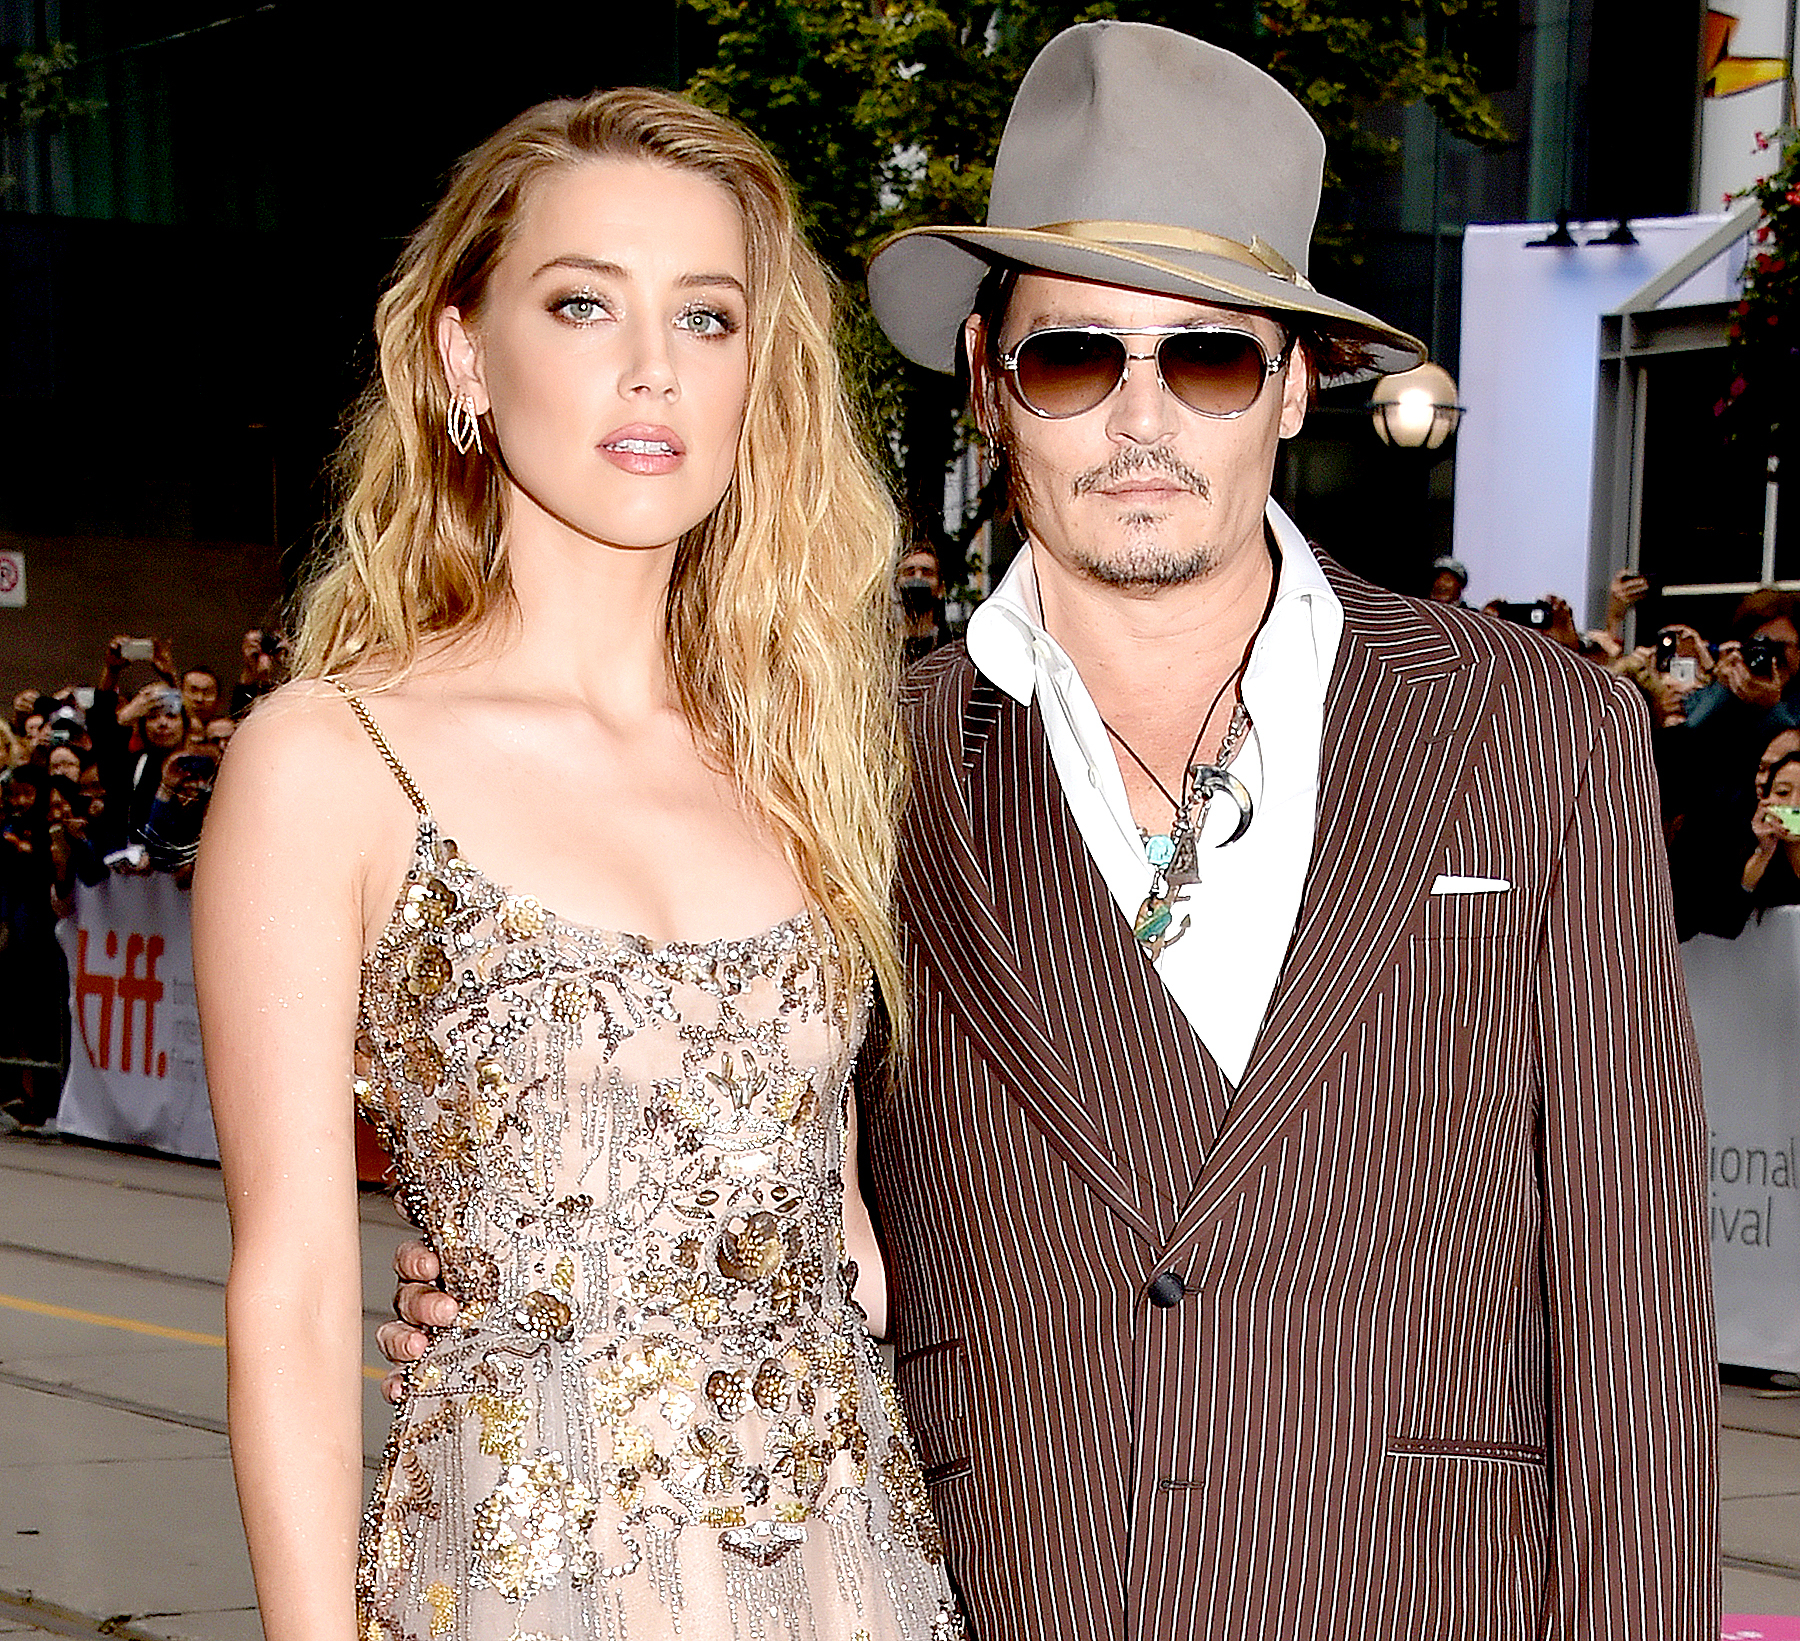 Amber Heard and Johnny Depp attend 'The Danish Girl' premiere during the 2015 Toronto International Film Festival.